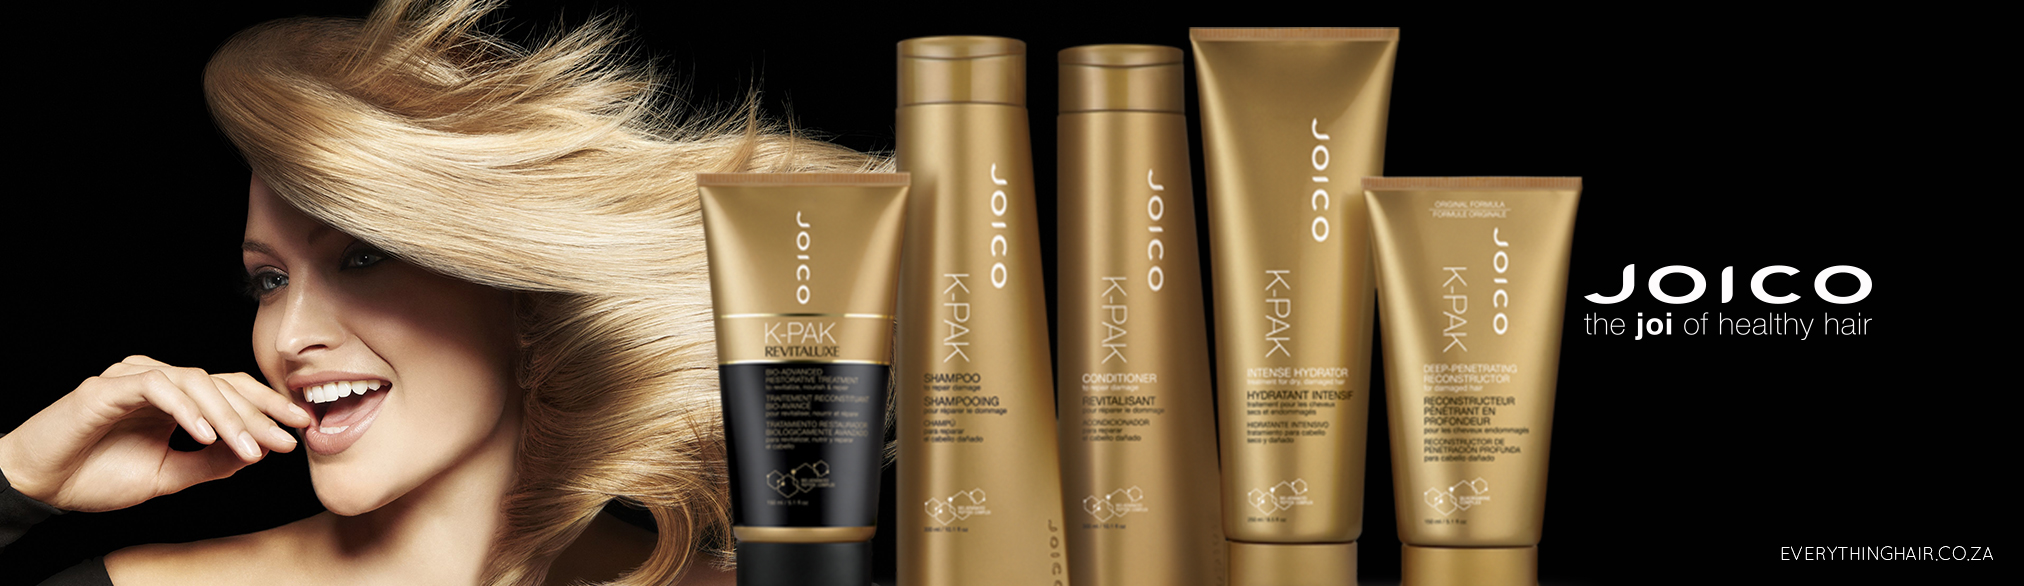 Joico advertisement with blonde woman.